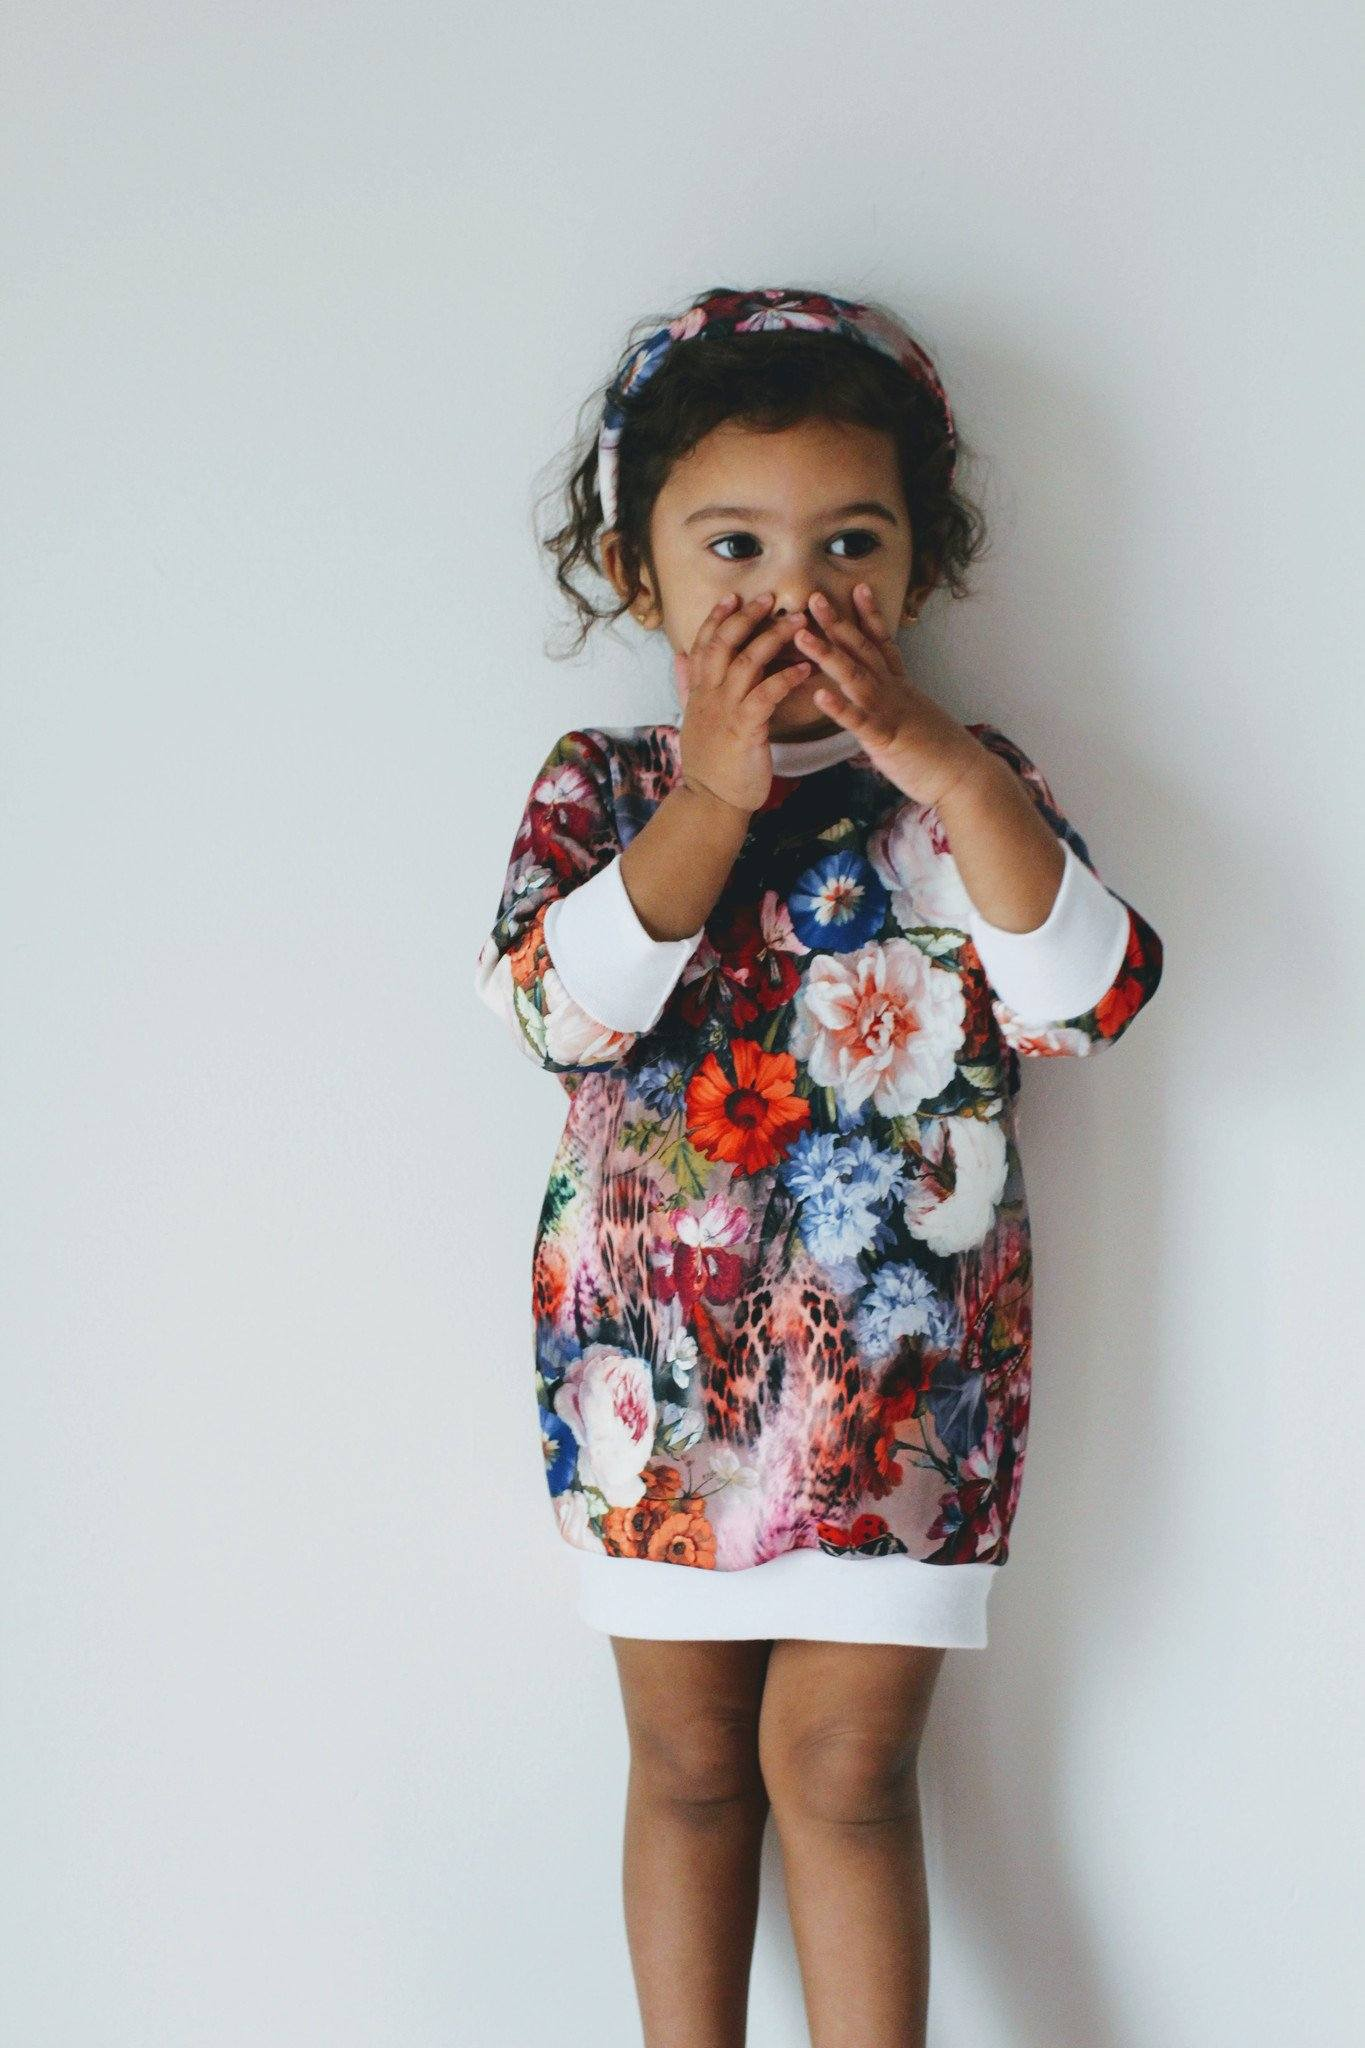 Sweater - Floral Sweater Dress For Toddler Girls